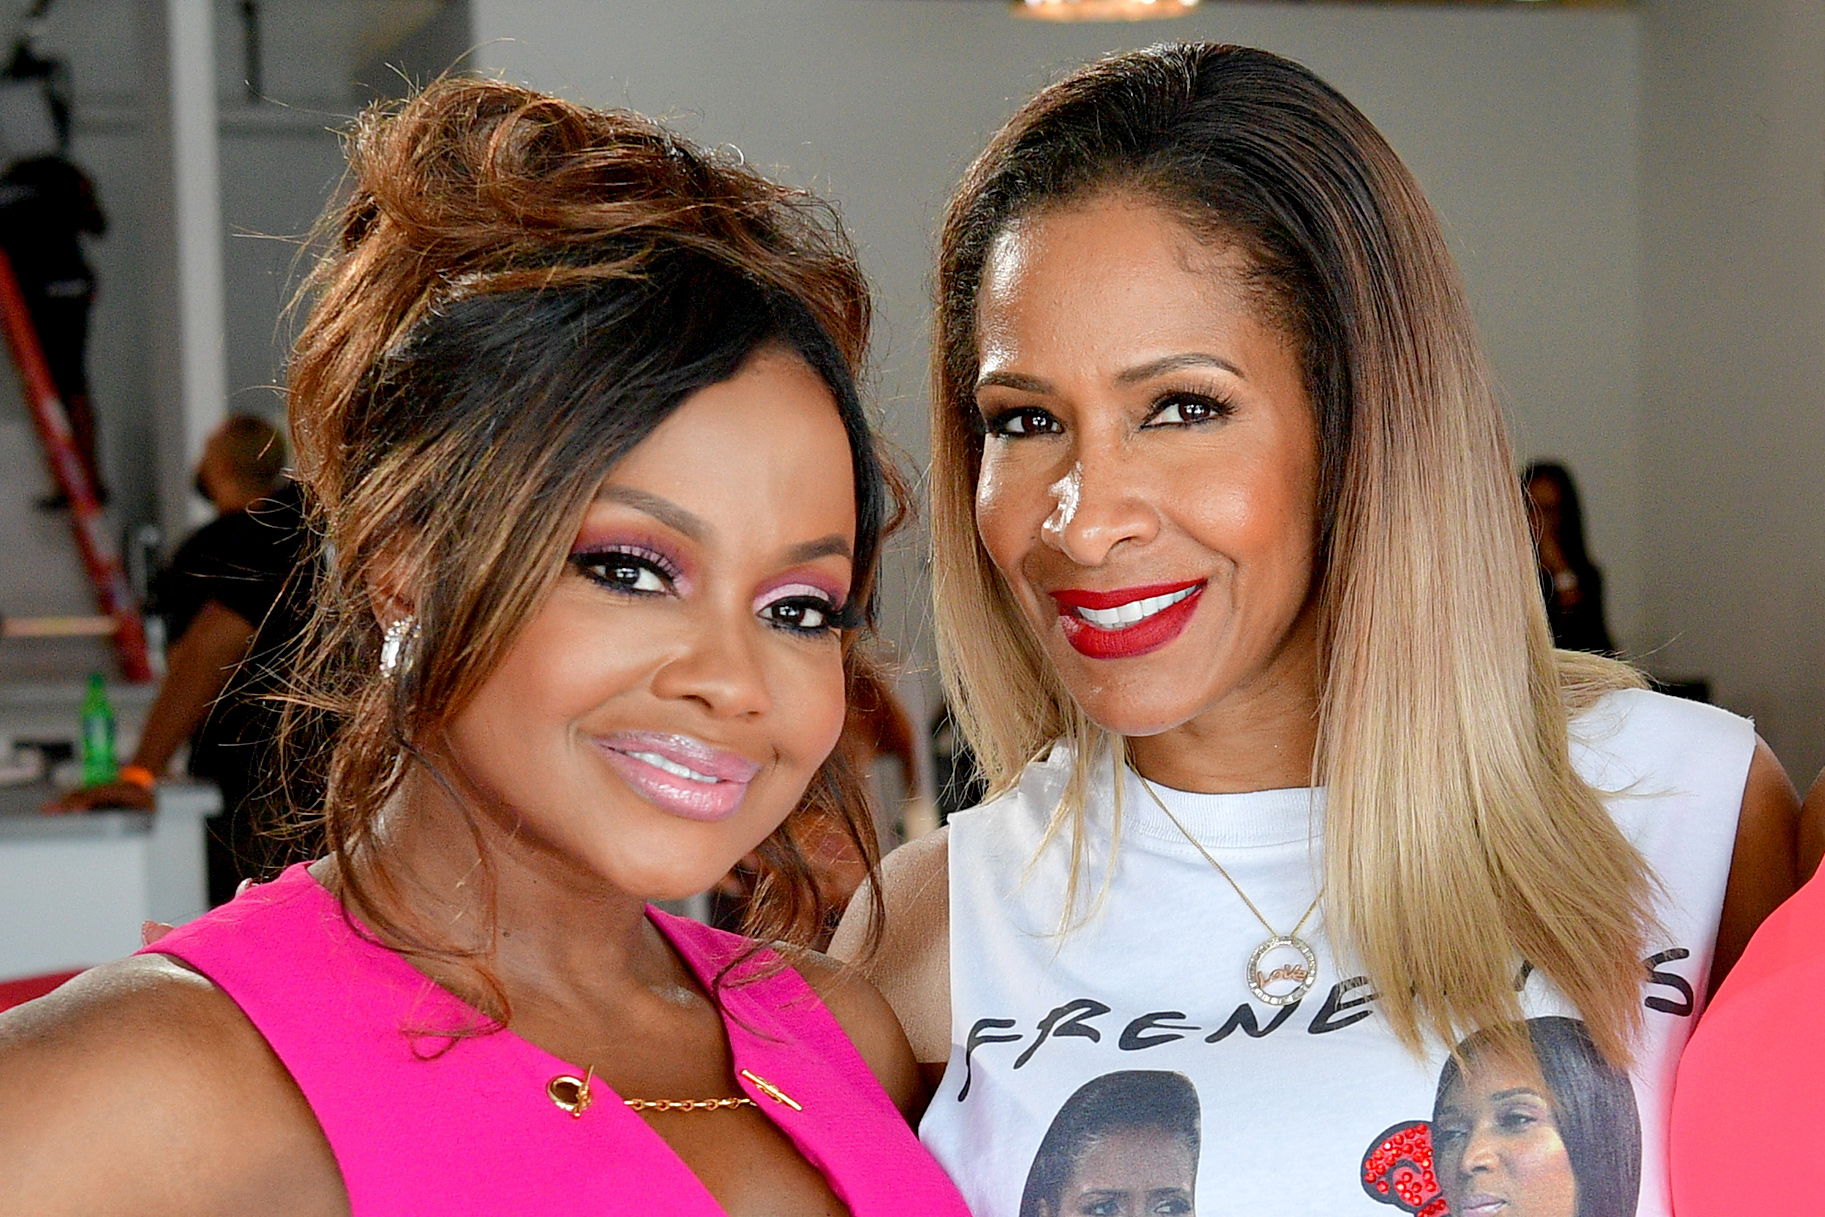 rhoa-headed-for-cast-shakeup-all-eyes-on-phaedra-parks-and-sheree-whitfield